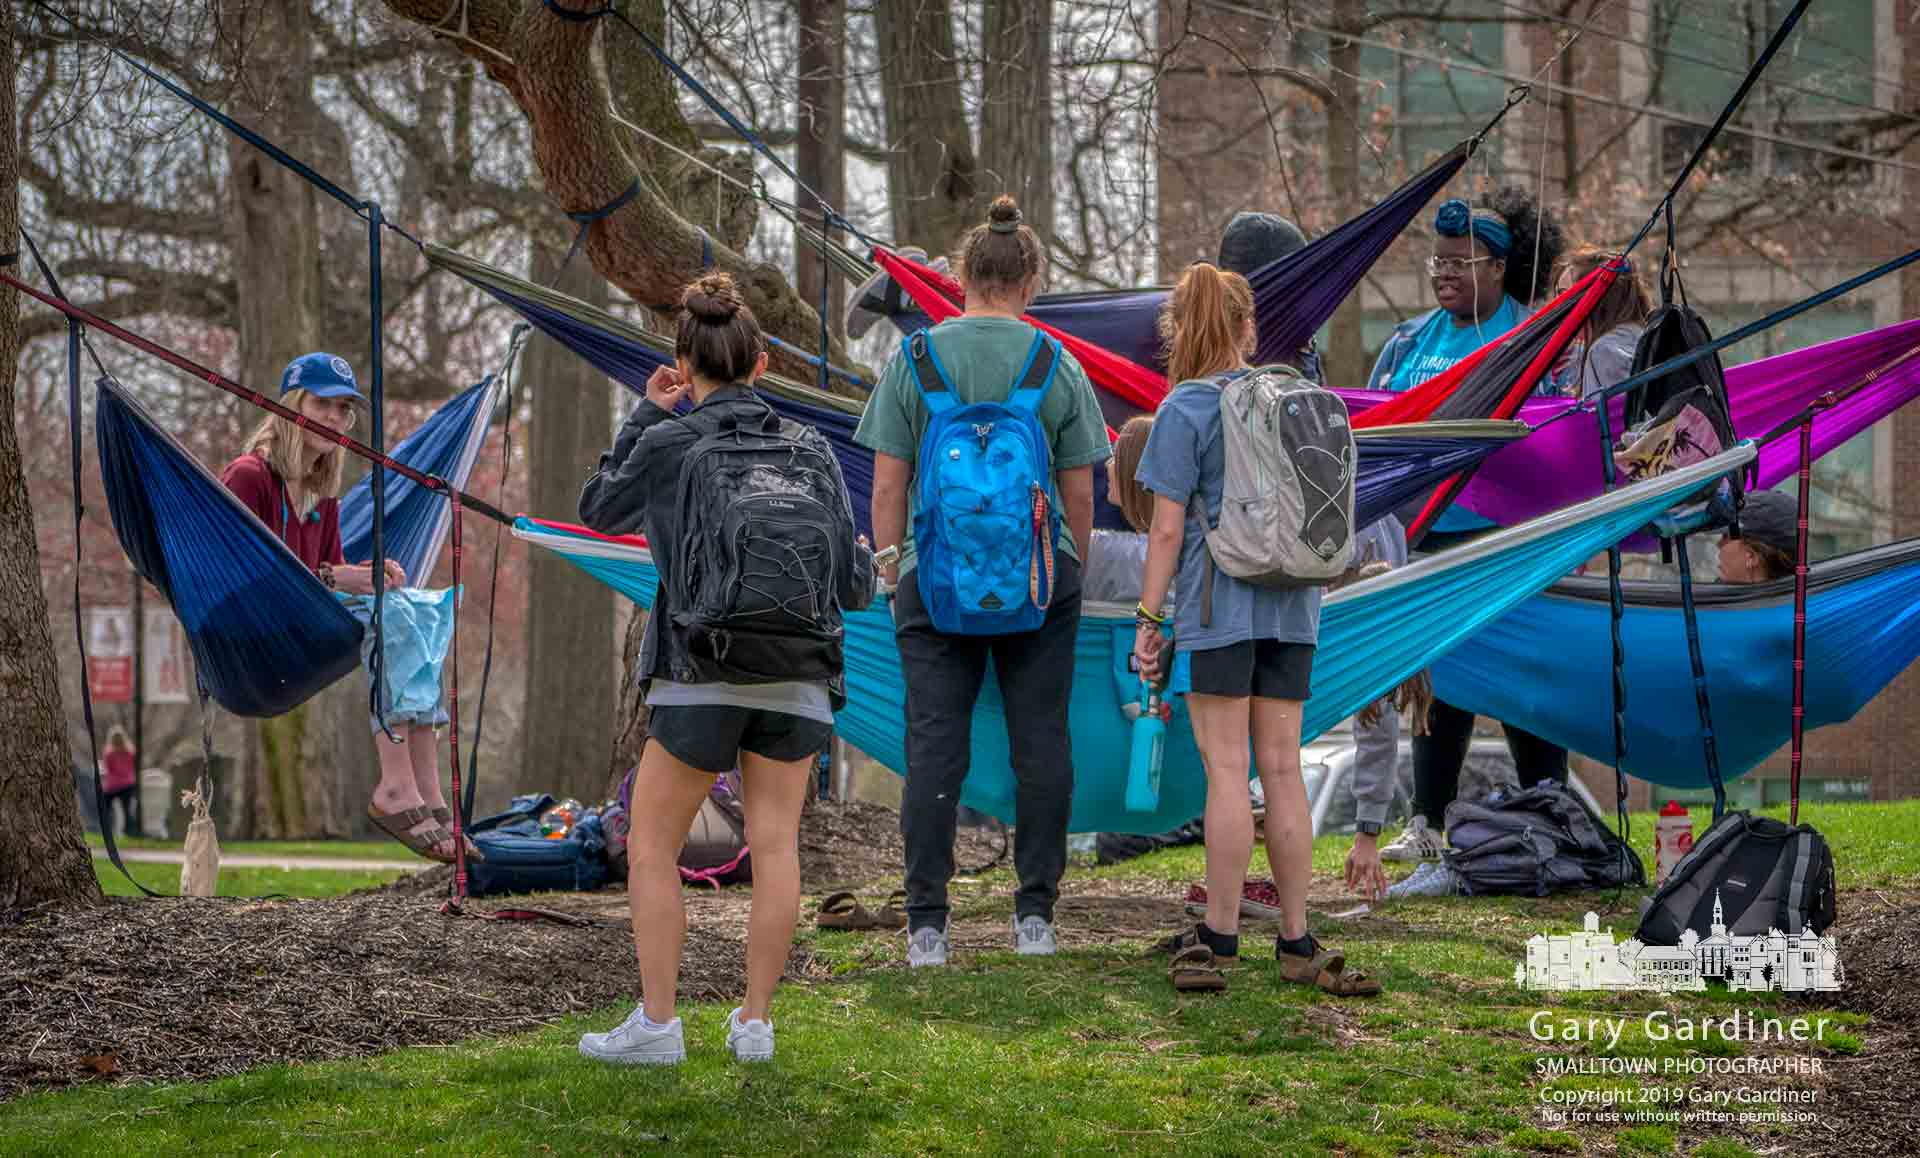 Otterbein students gather at hammocks hung at West Main and Grove as spring weather warmed the campus. My Final Photo for April 8, 2019.